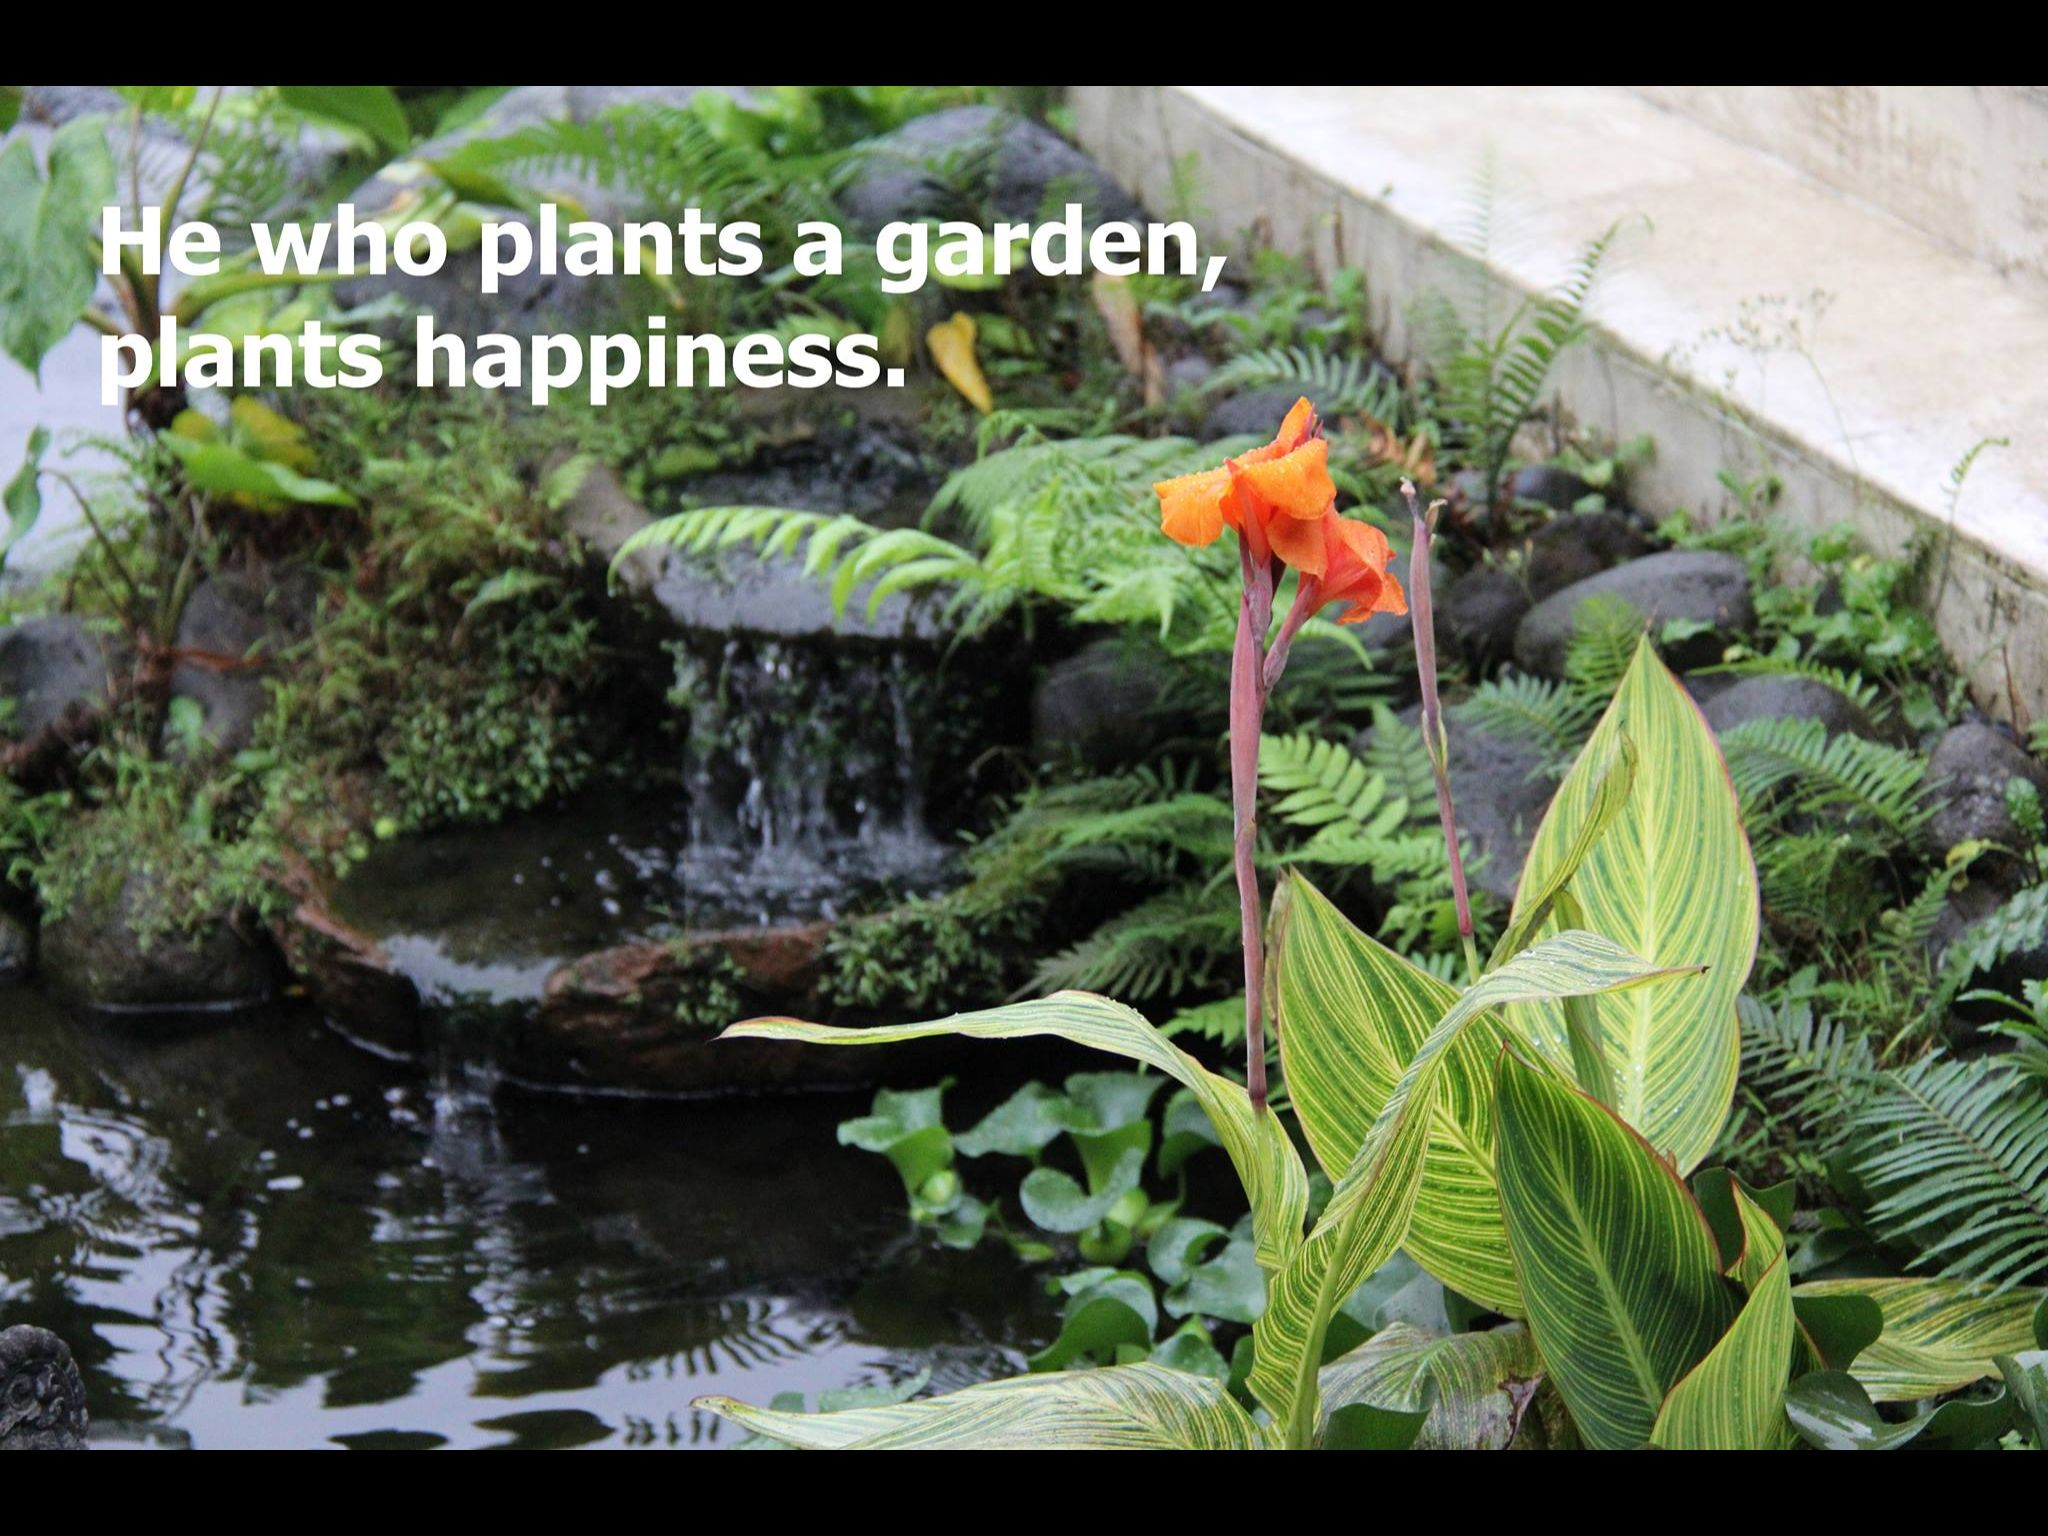 He who plants a garden, plants happiness.